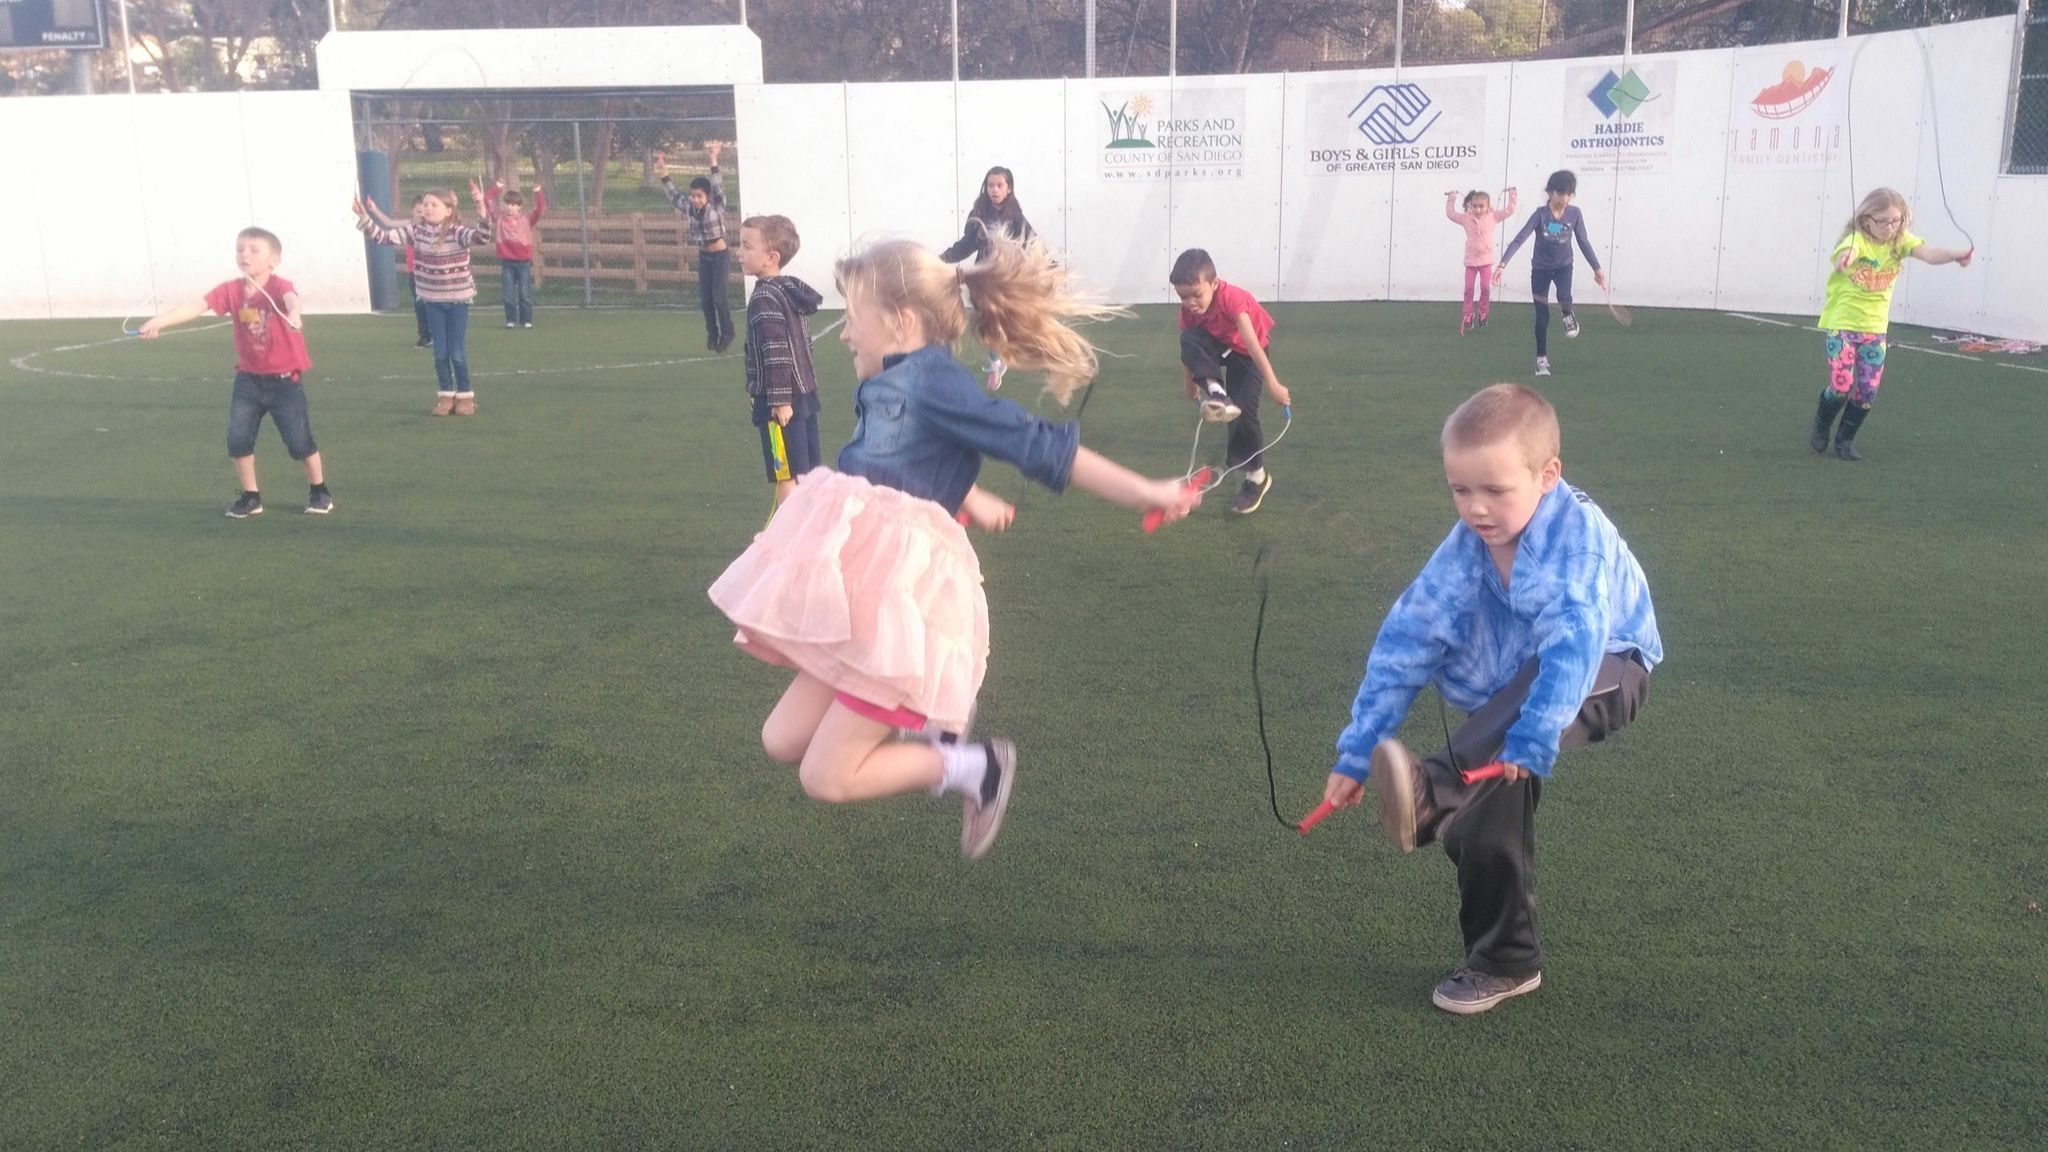 Averee Jones, 8, left, and Adam Storrs, 5, jump rope during the Ramona Boys & Girls Club's Little Jumps Big Changes fundraising celebrations.